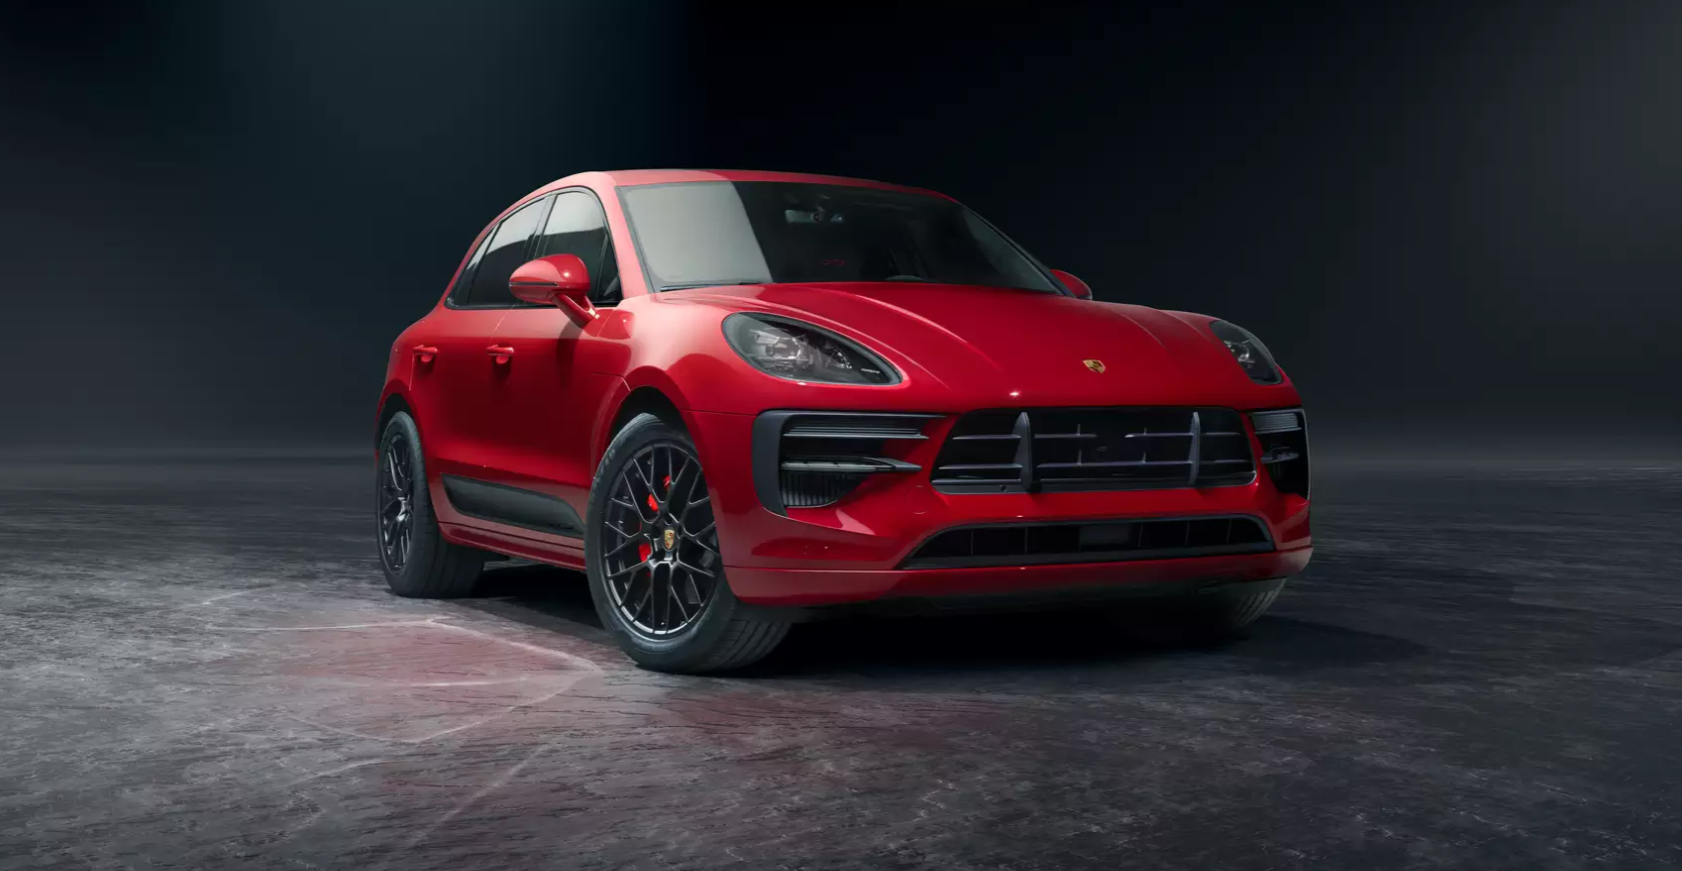 Click here to learn more about the newly redesigned 2021 Porsche Macan.